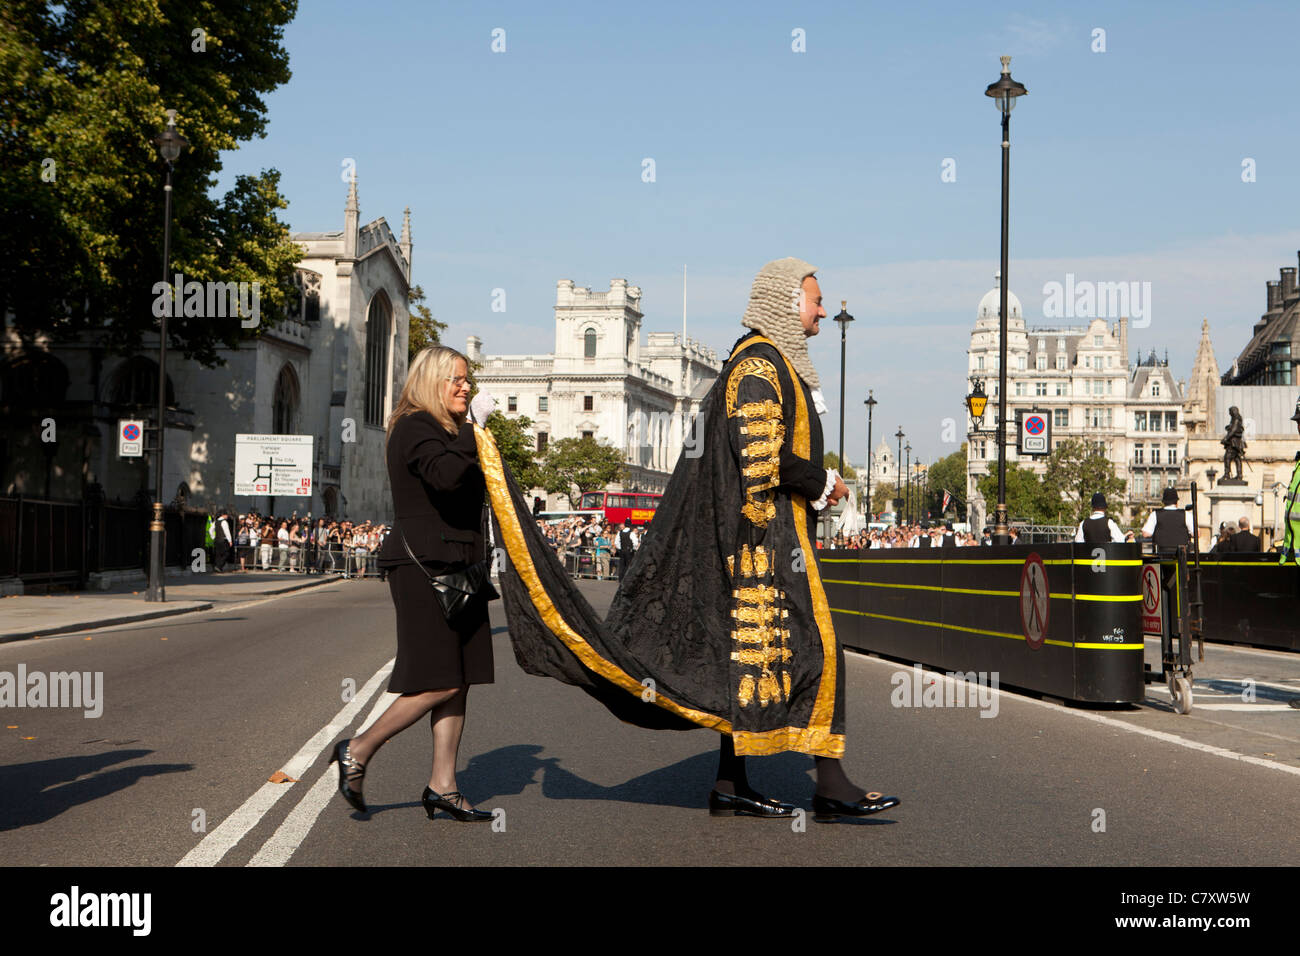 Lord Chancellor's Breakfast. Members of the Judiciary in procession from  Westminster Abbey to Houses of Parliament. Stock Photo